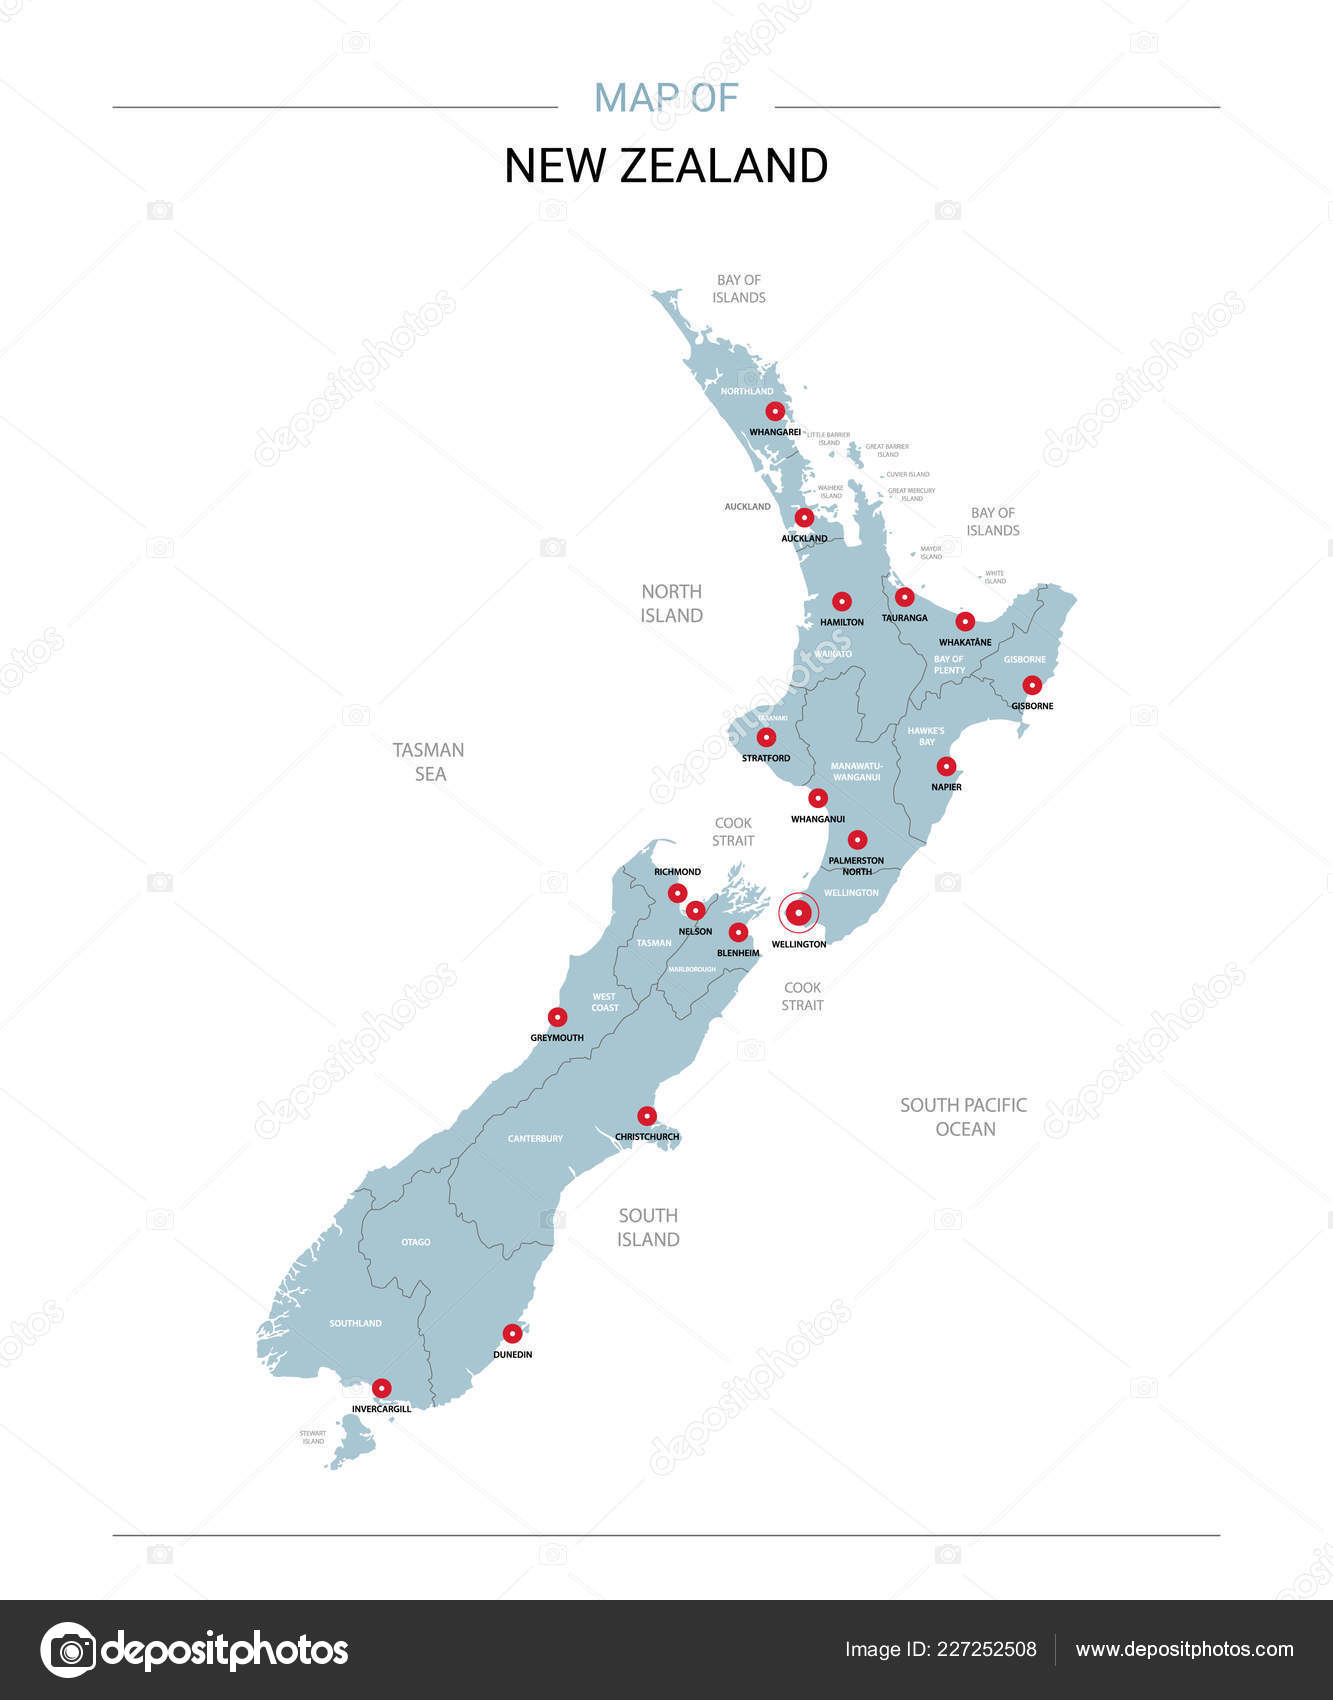 Map New Zealand Regions.New Zealand Vector Map Editable Template Regions Cities Red Pins